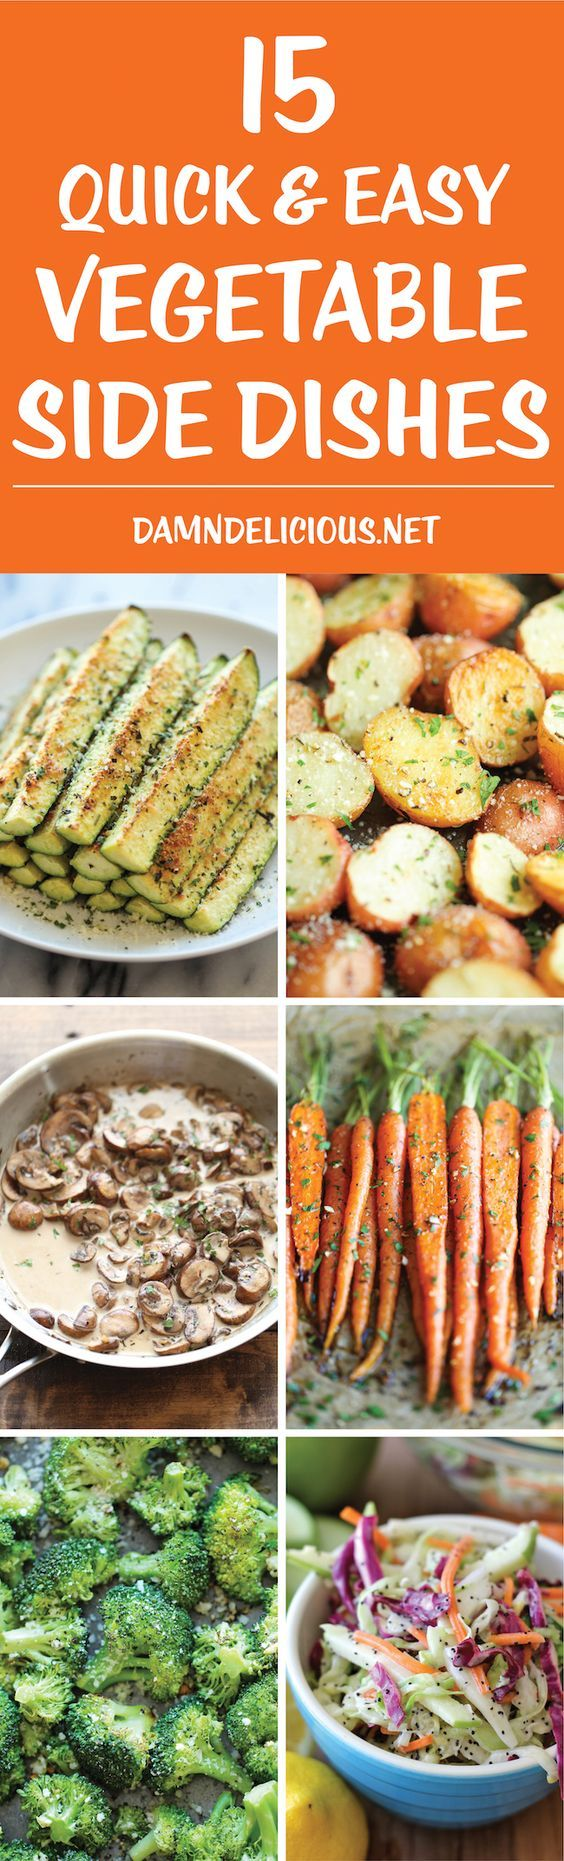 15 Quick and Easy Vegetable Side Dishes - These side dishes can match any main dish with just 10 min prep. They're so easy, hearty and packed with flavor!: